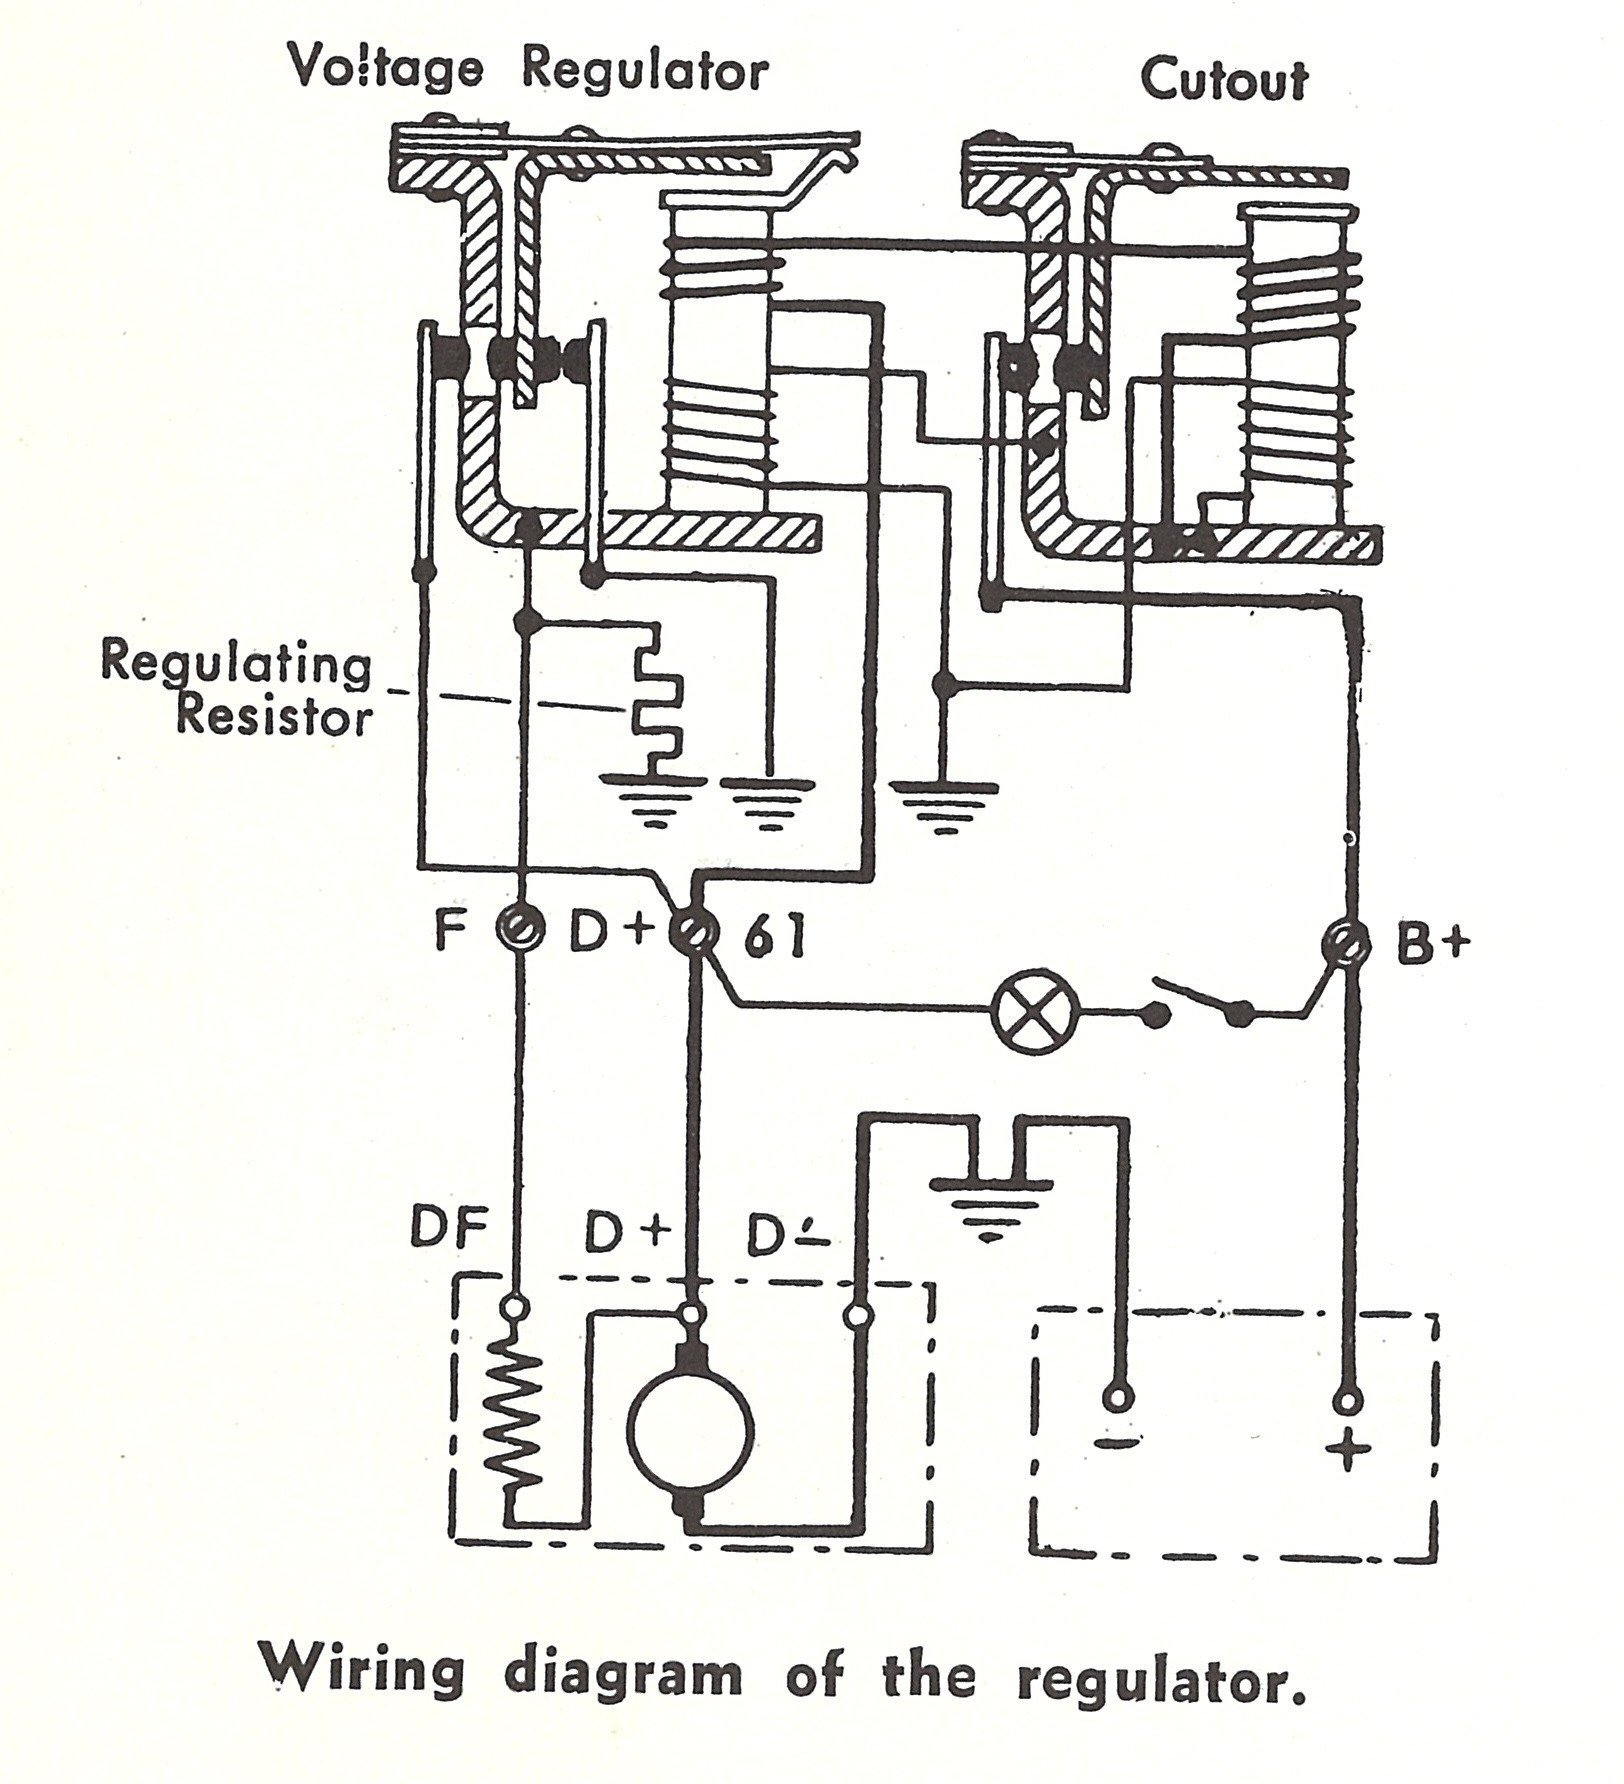 67 vw bug fuse diagram wiring schematic  | 1624 x 1784